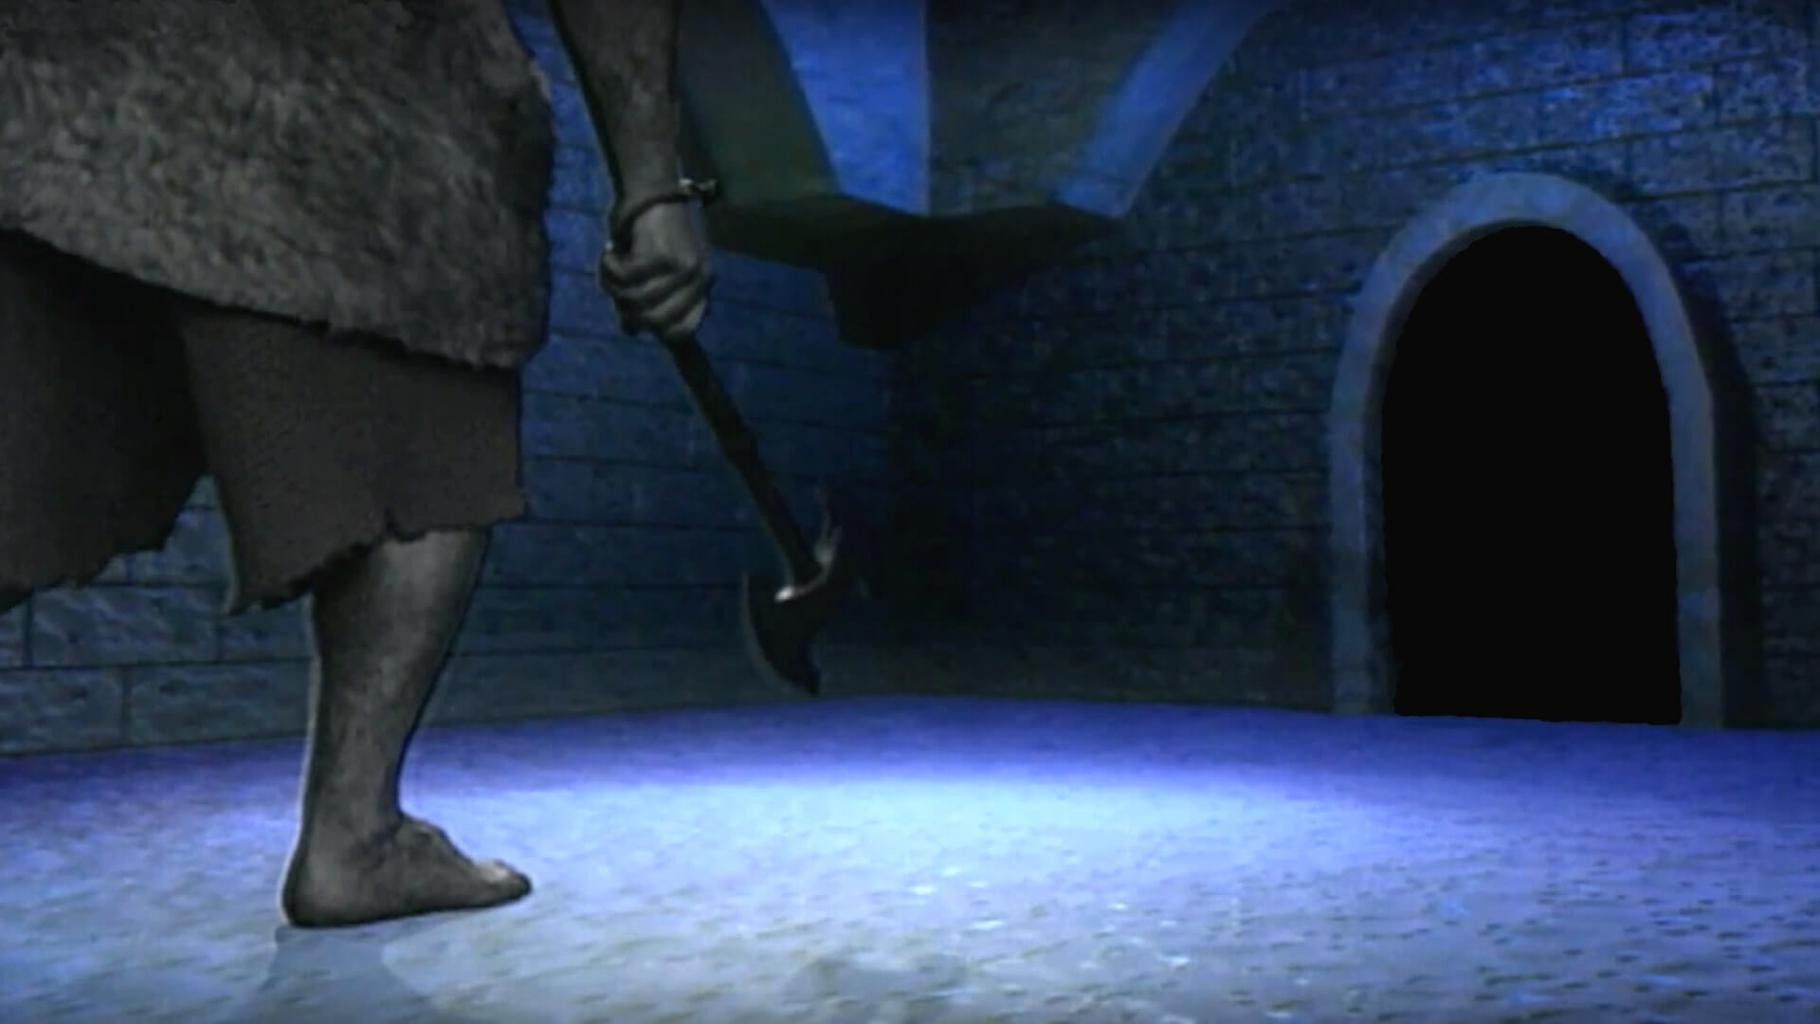 A troll in pursuit. From Series 8, Team 4 of Knightmare (1994)